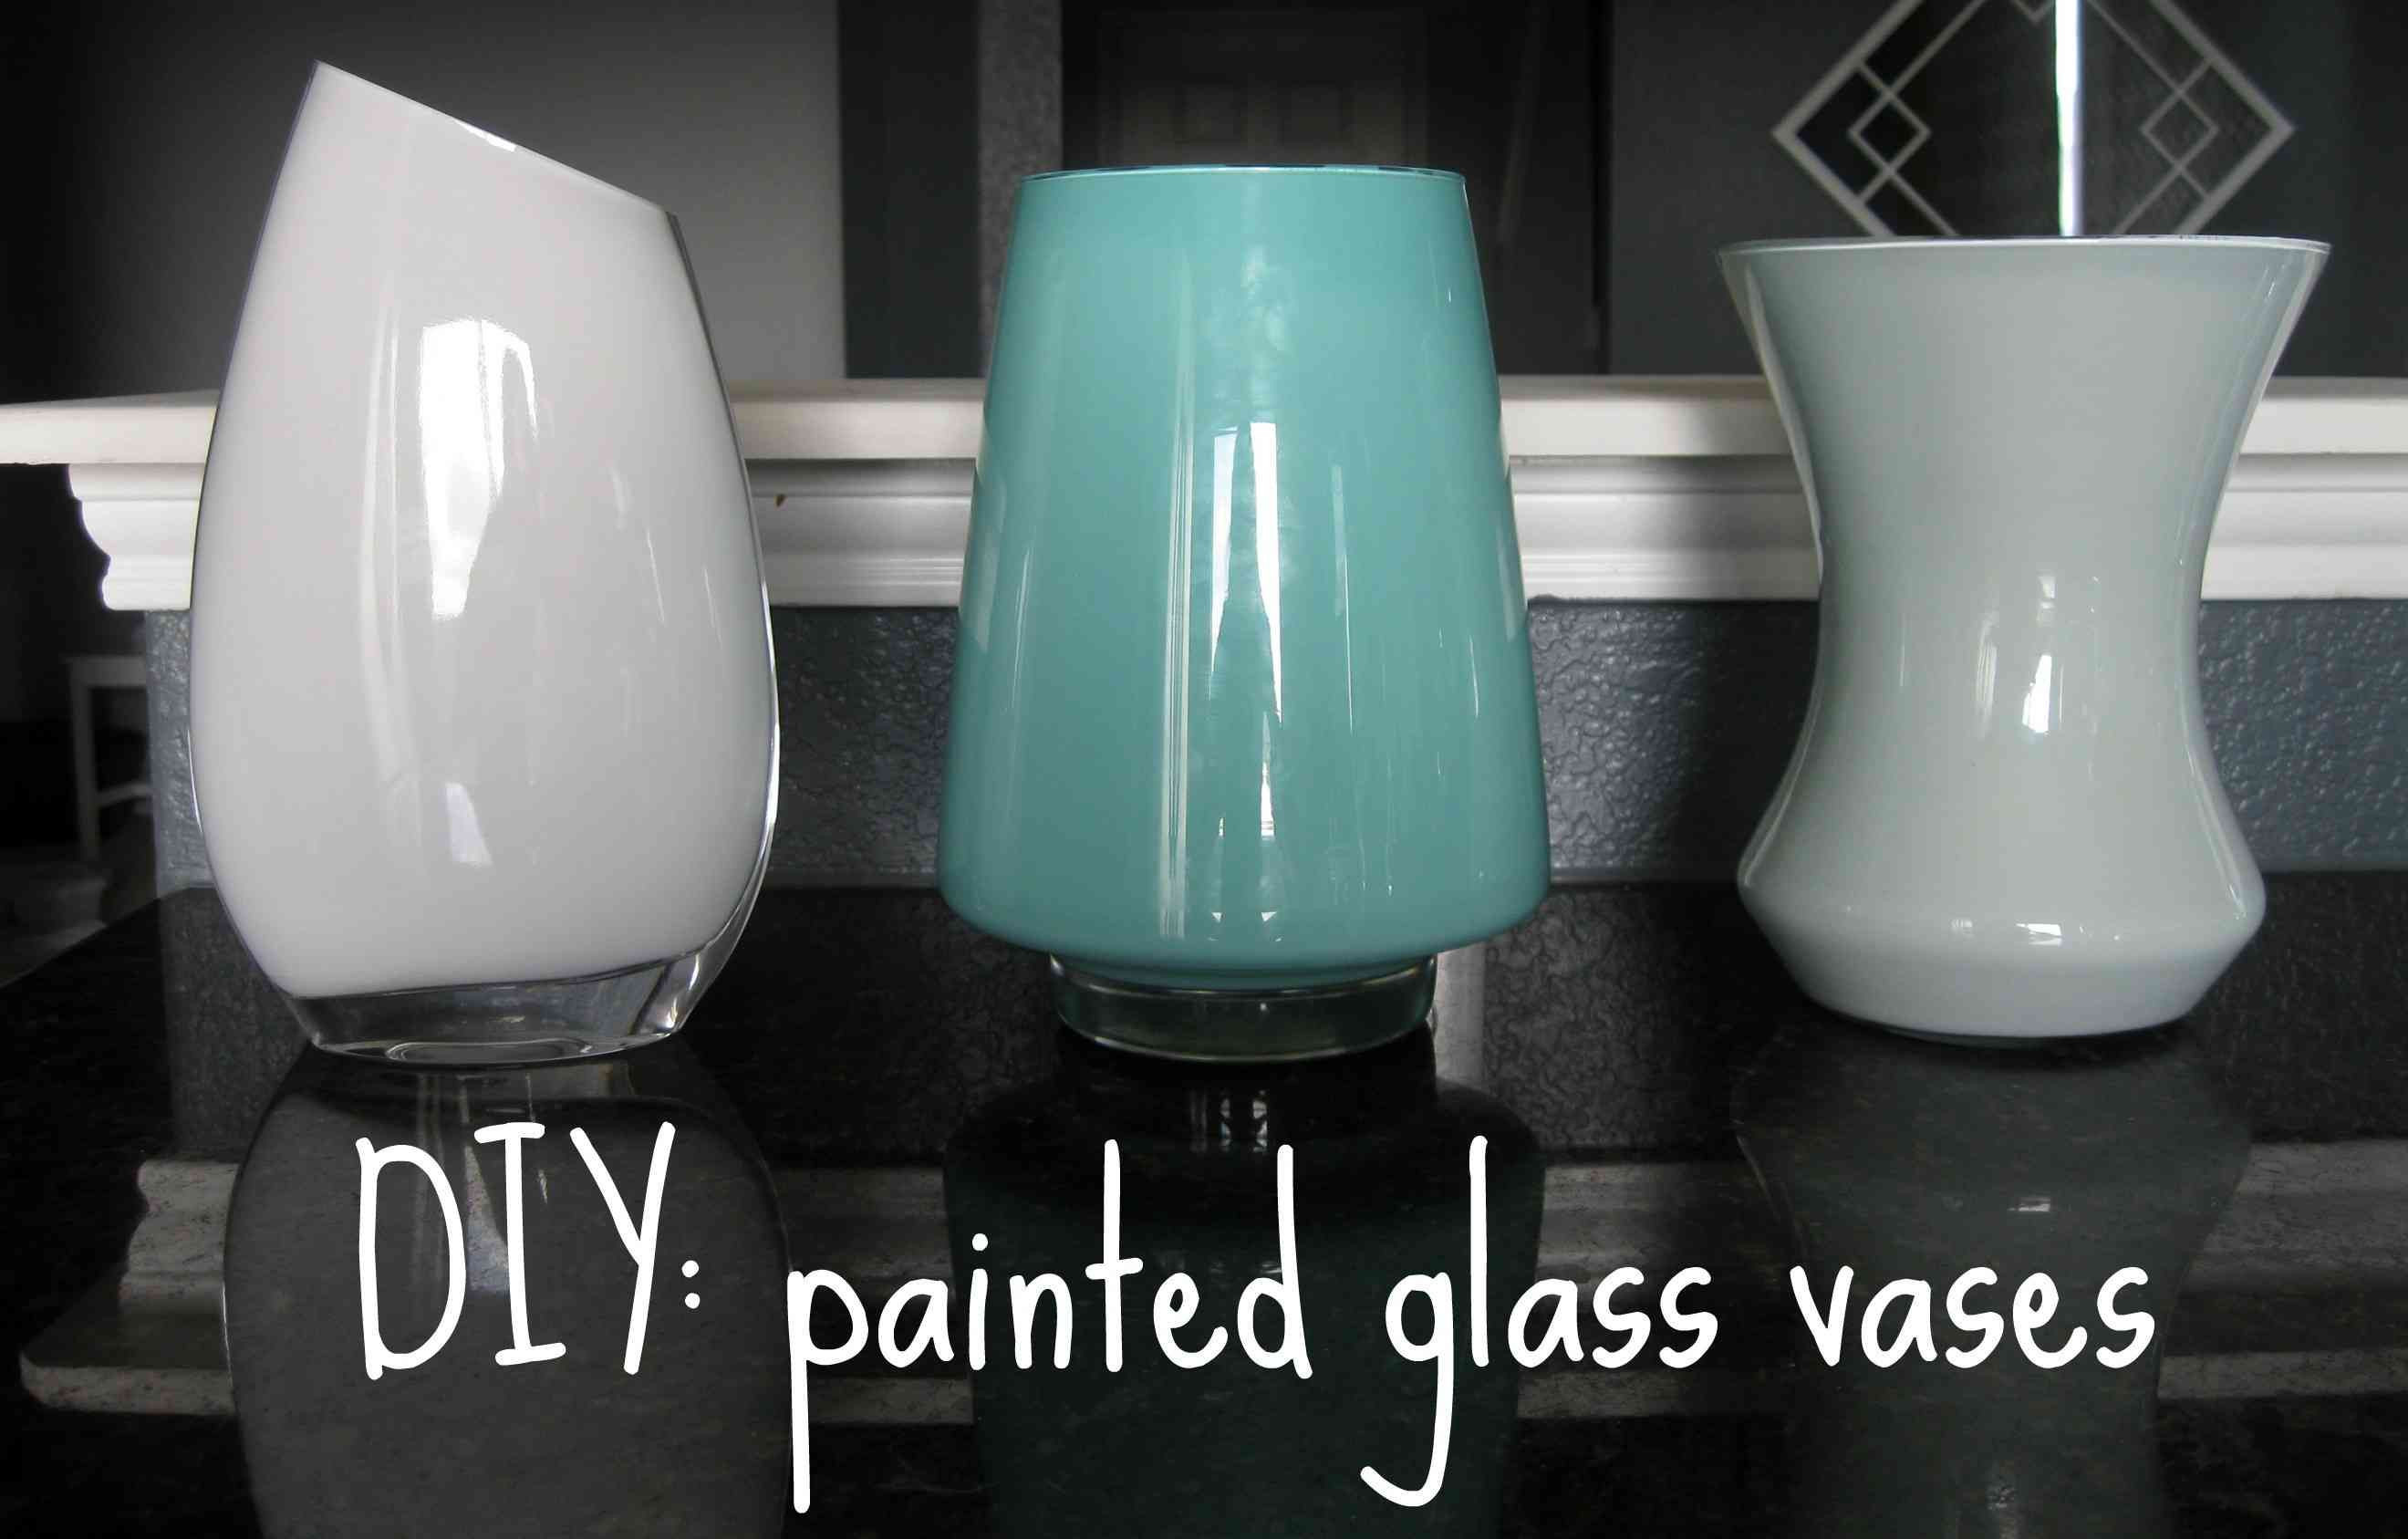 Blue Sea Glass Vase Of 23 Blue Crystal Vase the Weekly World Inside Diy Painted Glass Vasesh Vases How to Paint Vasesi 0d Via Conejita Info